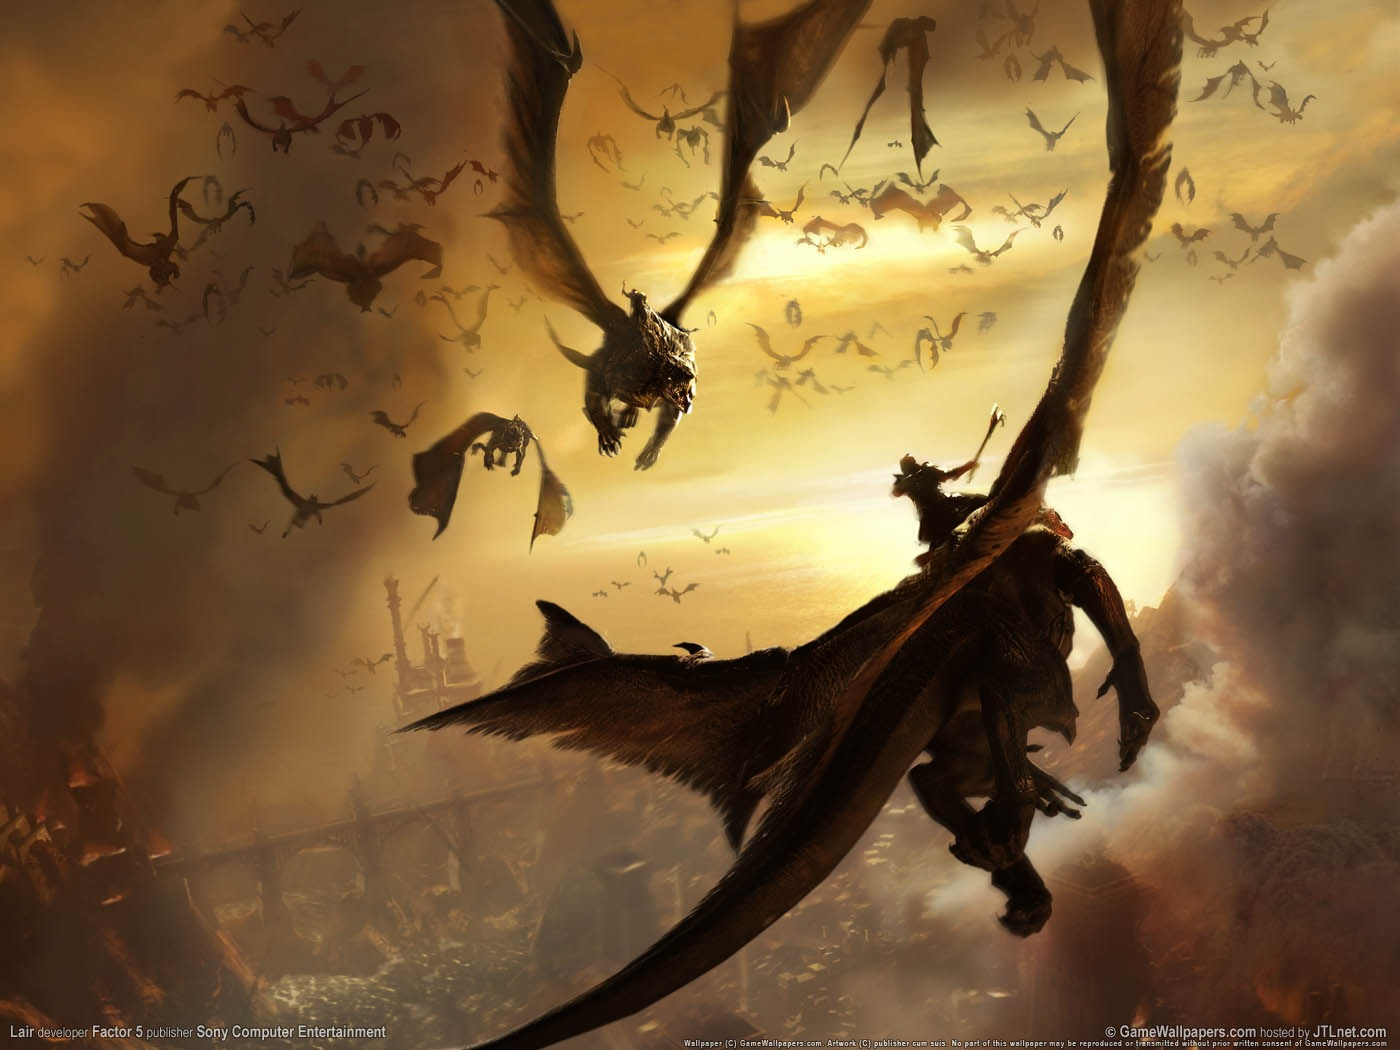 http://3.bp.blogspot.com/-Wd1sxFF1g7g/TmSWDjz7WpI/AAAAAAAAAK4/1ZPeXw5J6eQ/s1600/Dragons-Wallpapers-2.jpeg